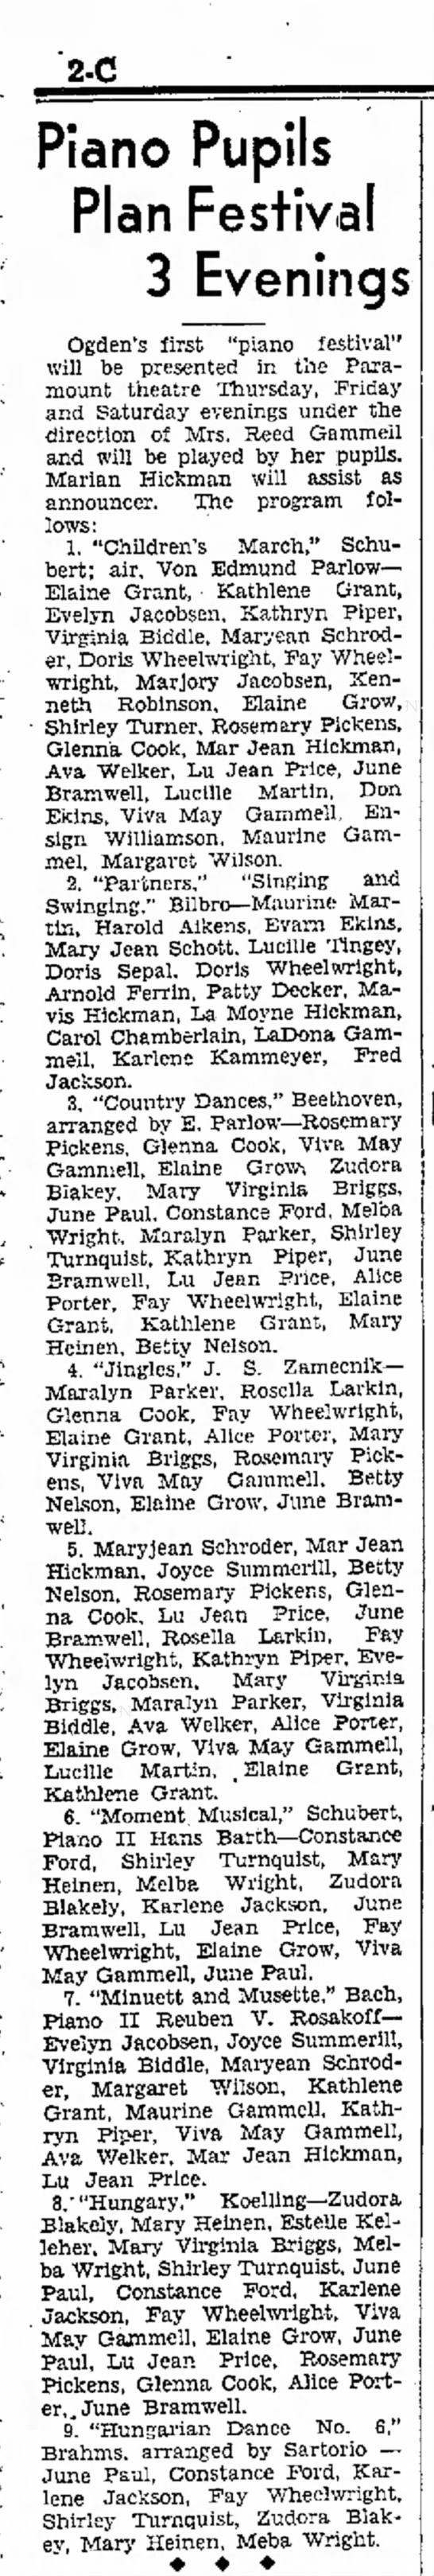 mary jean Piano Recital May 10, 1936 -